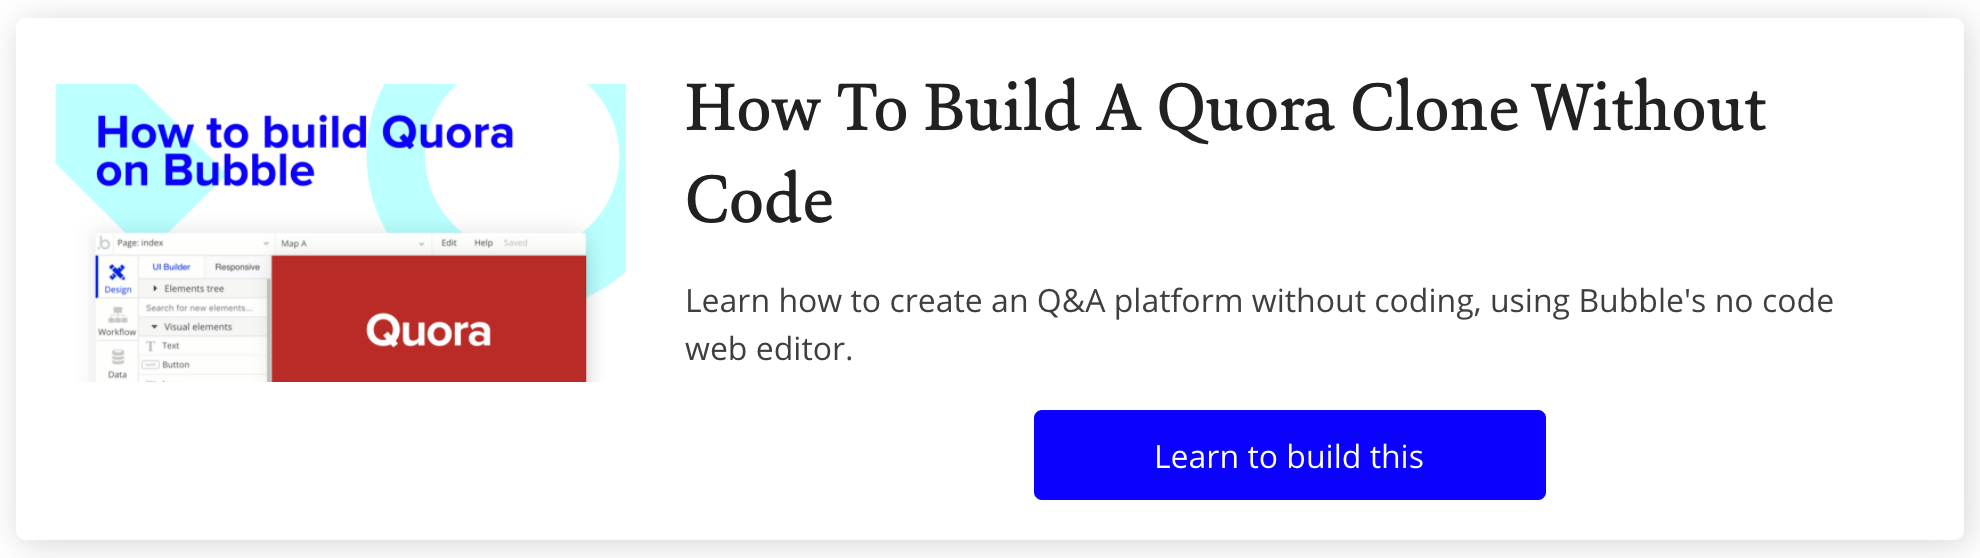 How To Build Quora in Bubble with No Code Tutorial